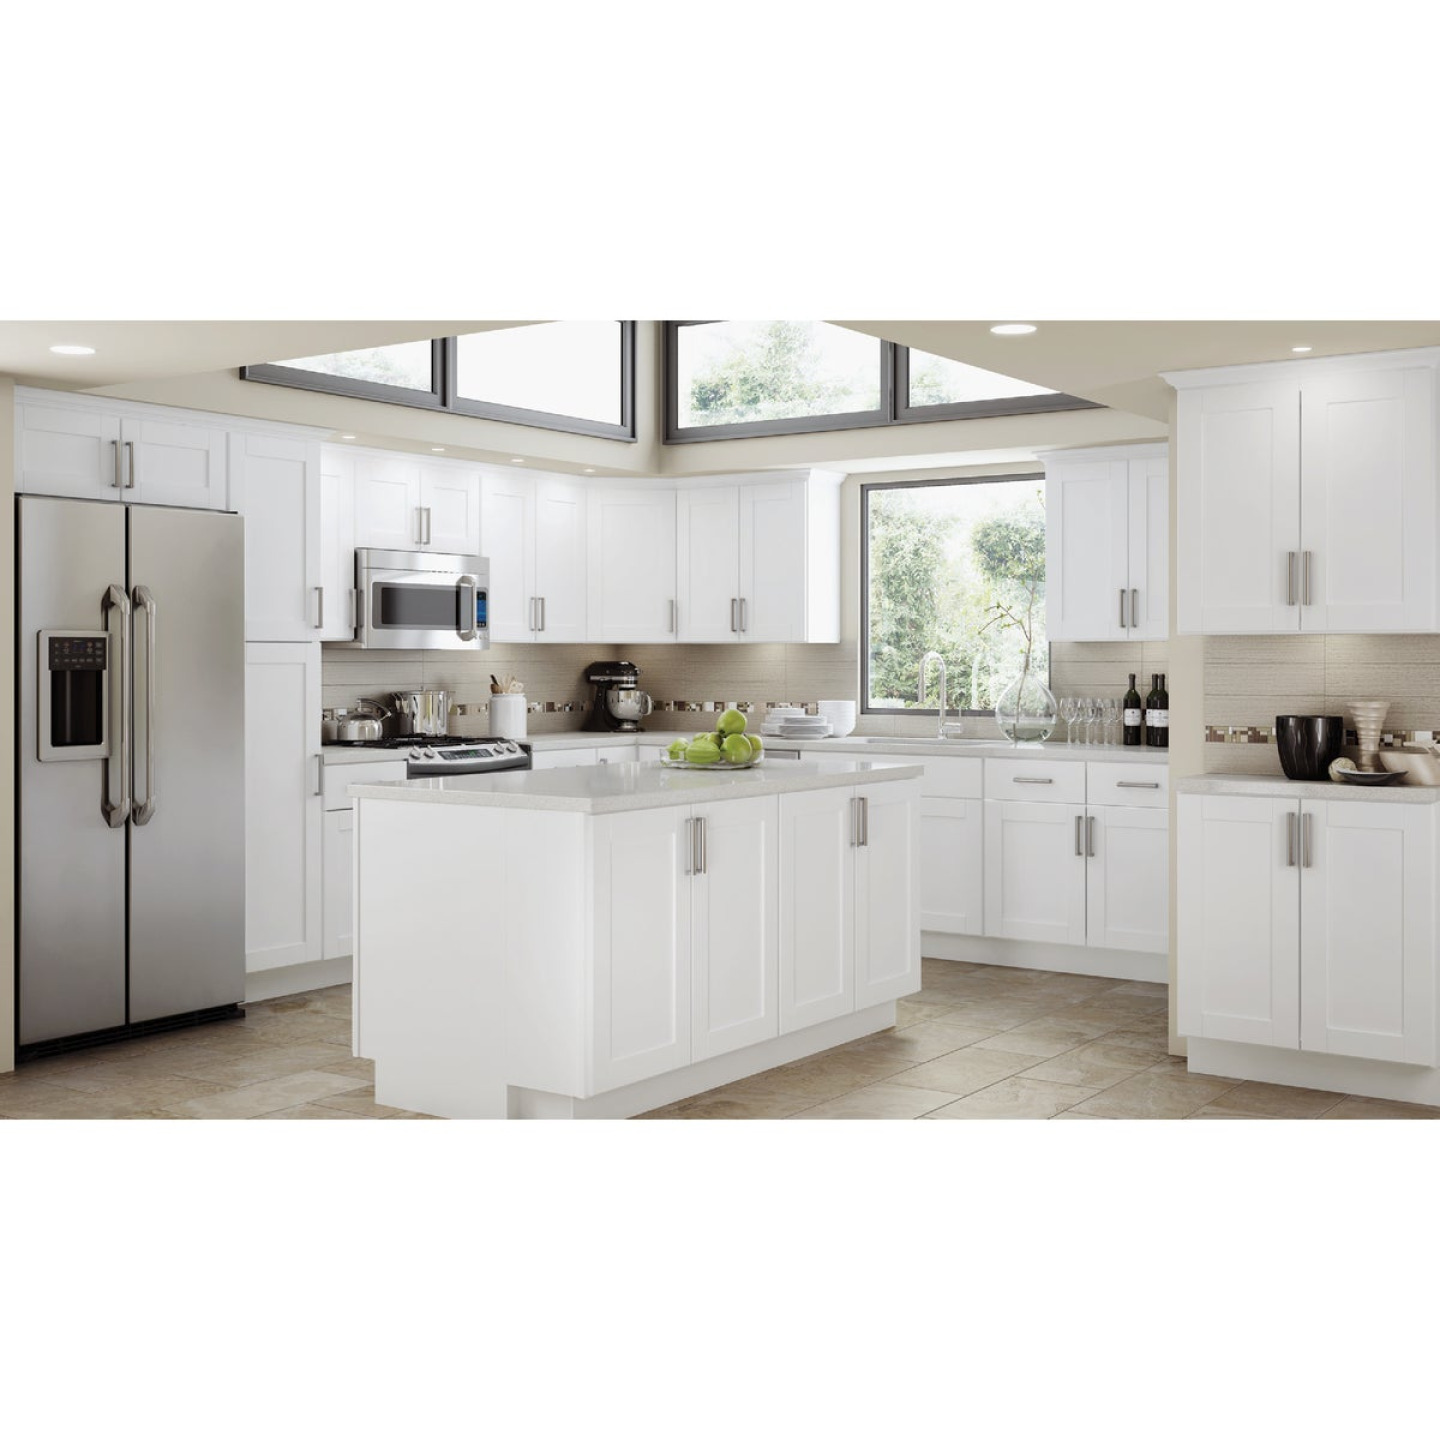 Continental Cabinets Andover Shaker 15 In. W x 34 In. H x 24 In. D White Thermofoil Base Kitchen Cabinet Image 2